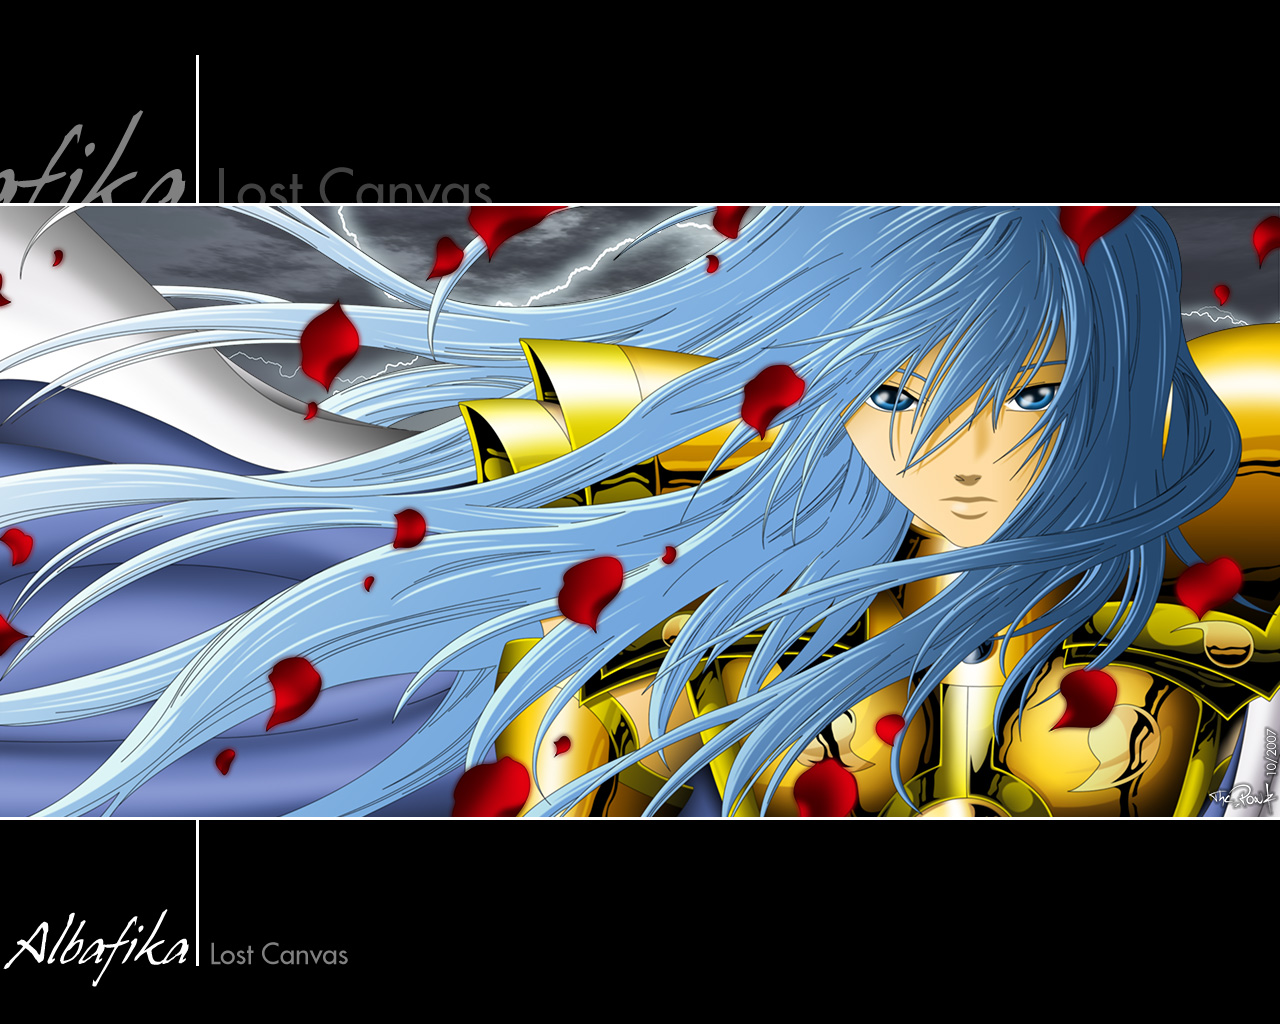 http://2.bp.blogspot.com/-XBEmOnYWlq4/Tic0d_LJ0wI/AAAAAAAAHUI/LPuwslmbC00/s1600/Wallpapers+-+Saint+Seiya+The+Lost+Canvas+%25281%2529.jpg